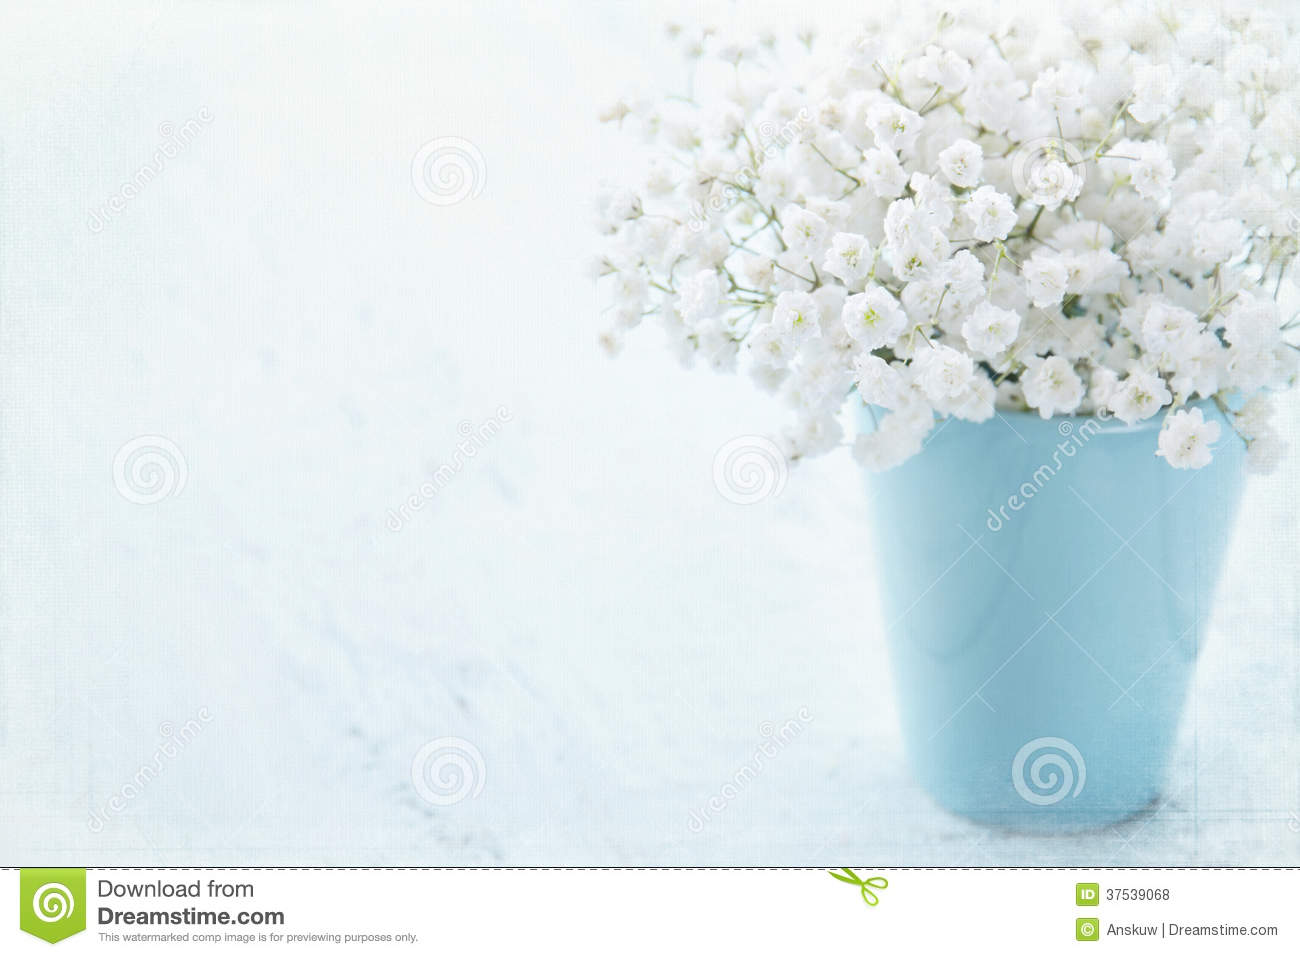 Baby S Breath Flowers In A Vase Stock Photo Image Of Vase Blue 37539068